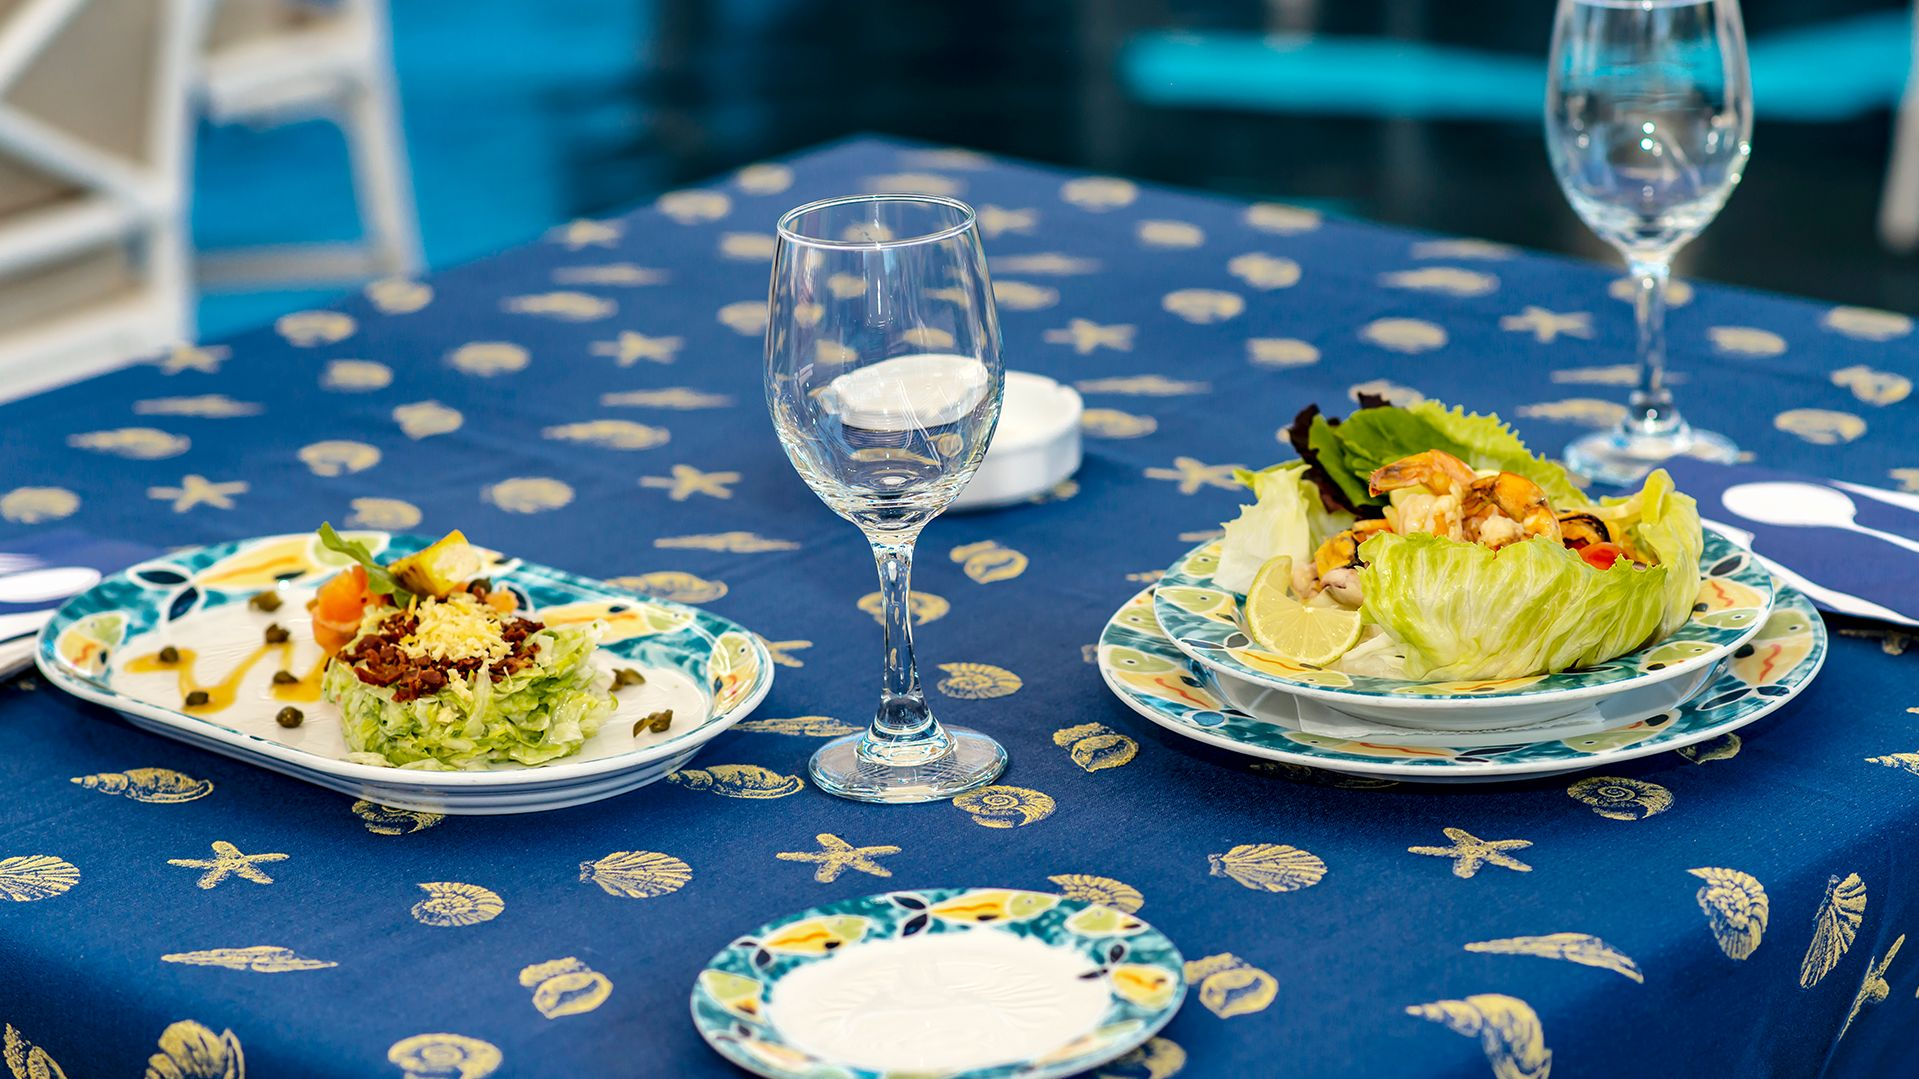 A Table Topped With Glasses Of Wine Sitting On Top Of A Blue Plate